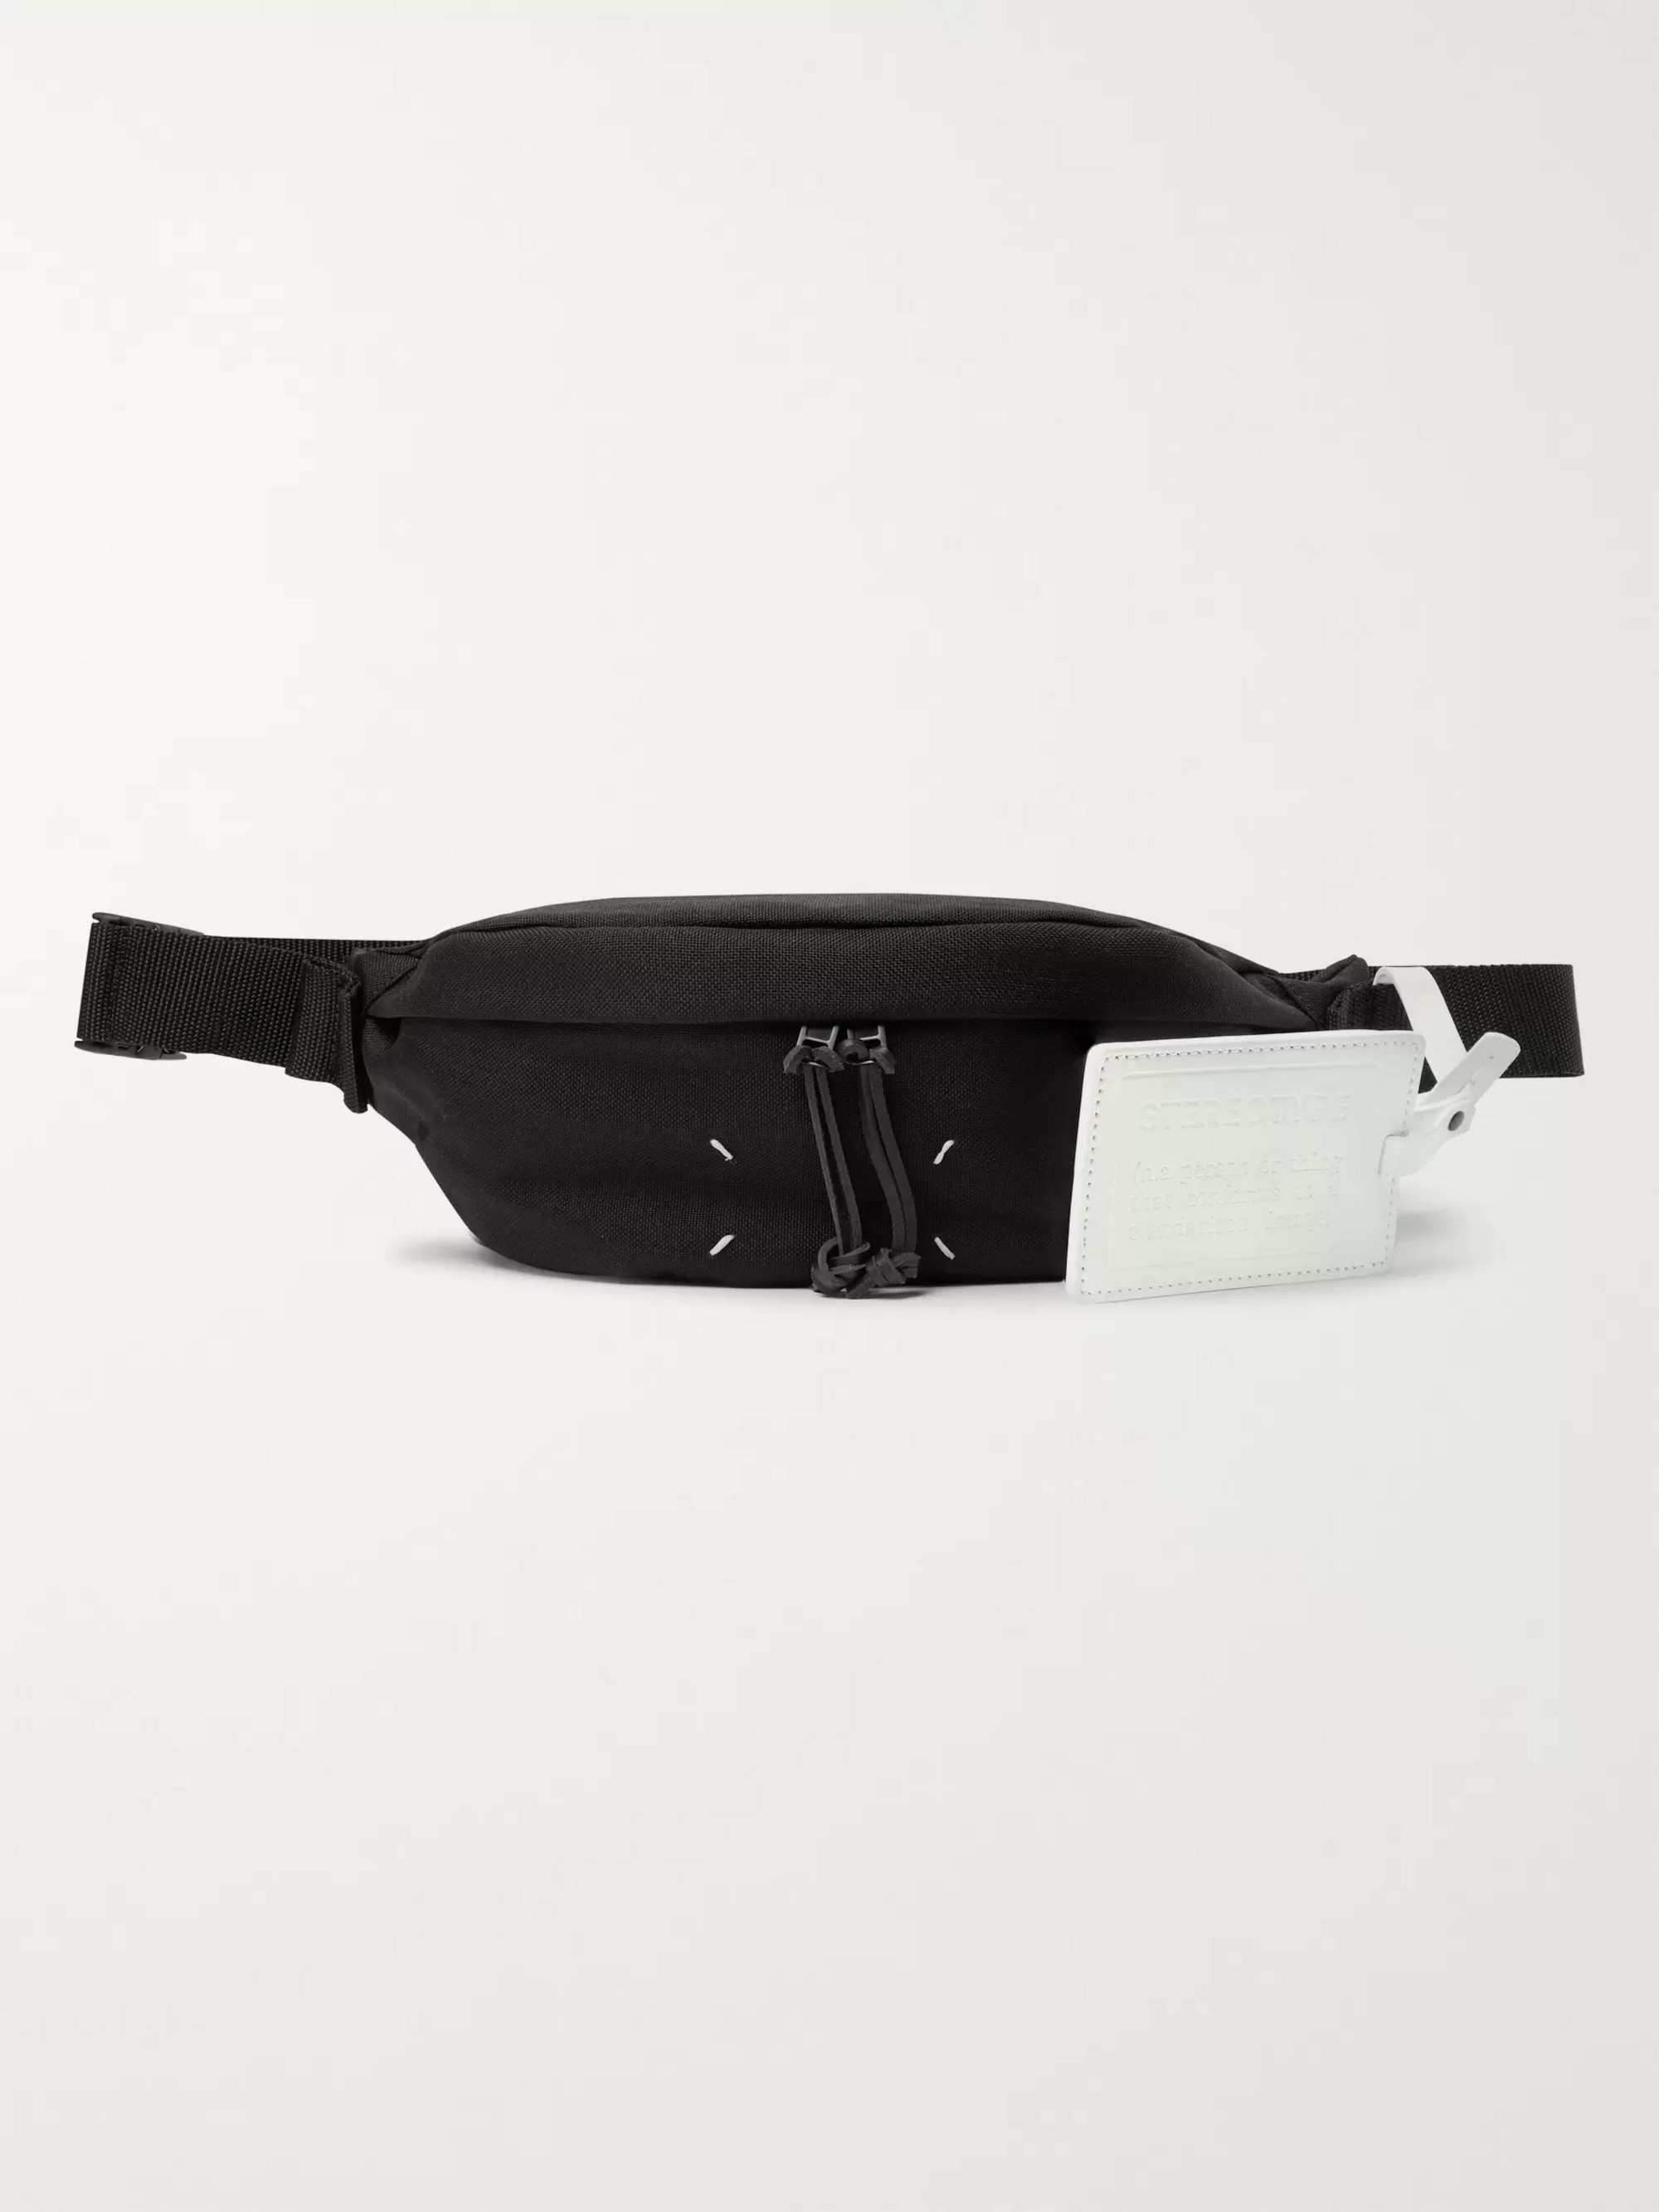 Maison Margiela Canvas Belt Bag